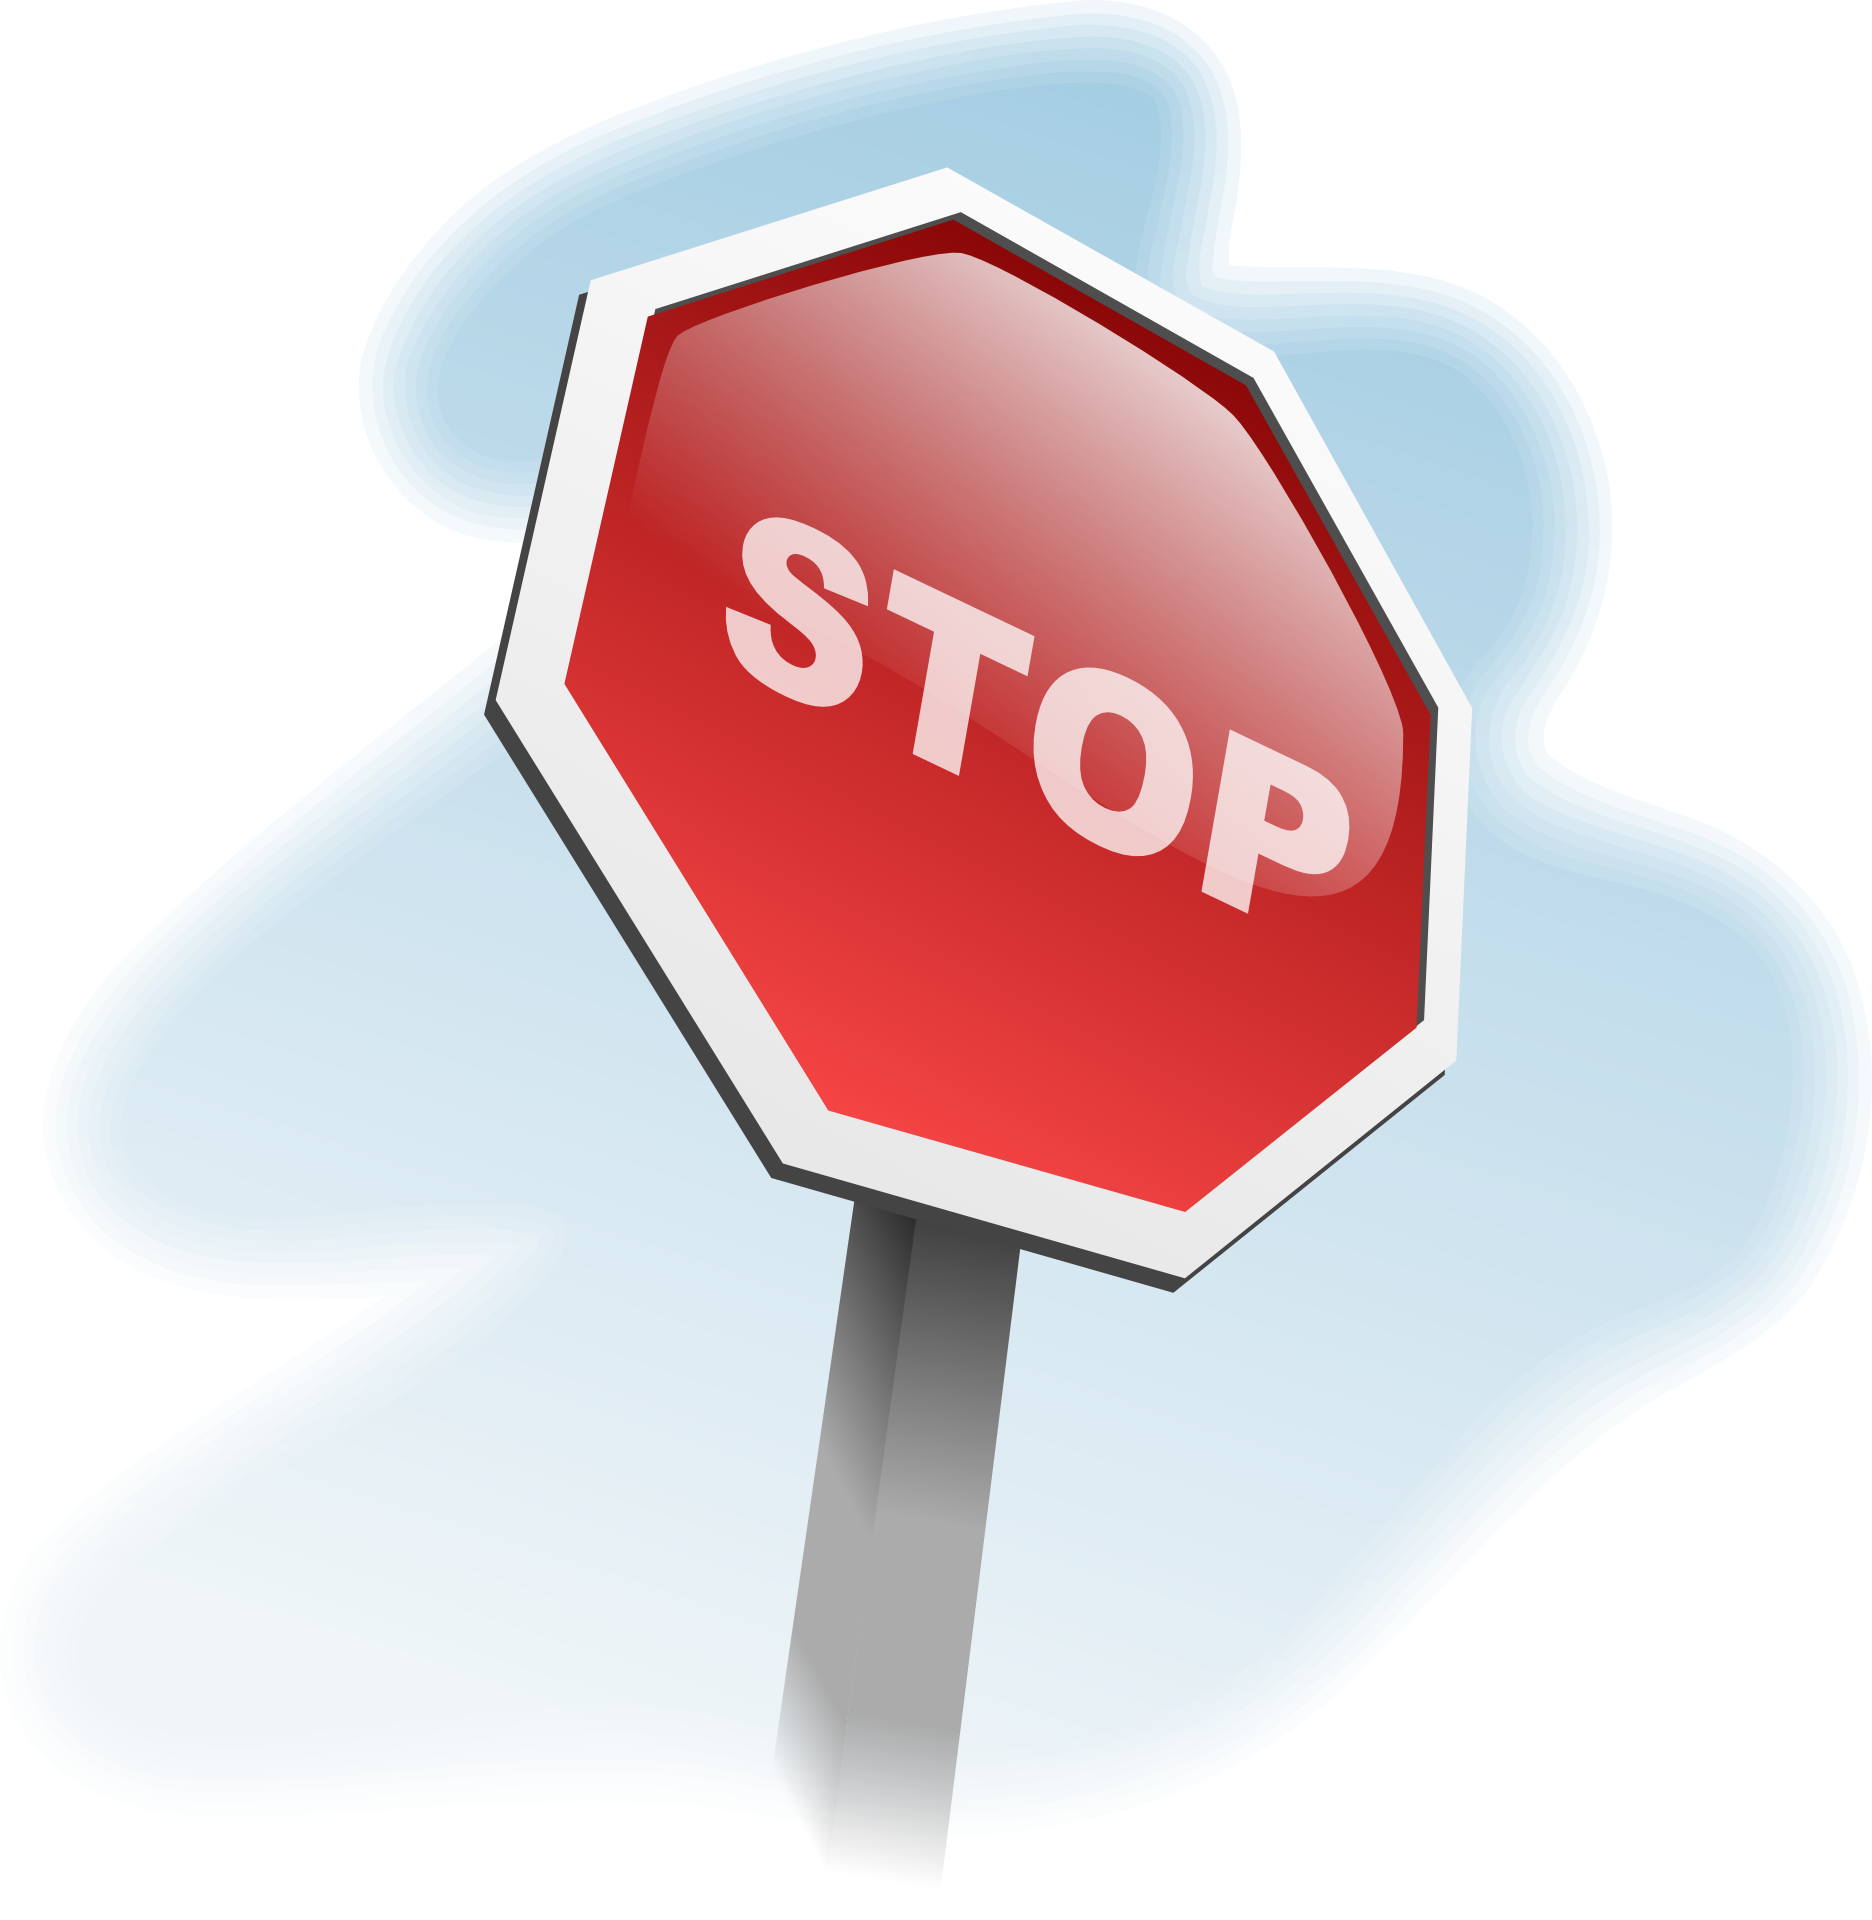 stop-sign-37020.png